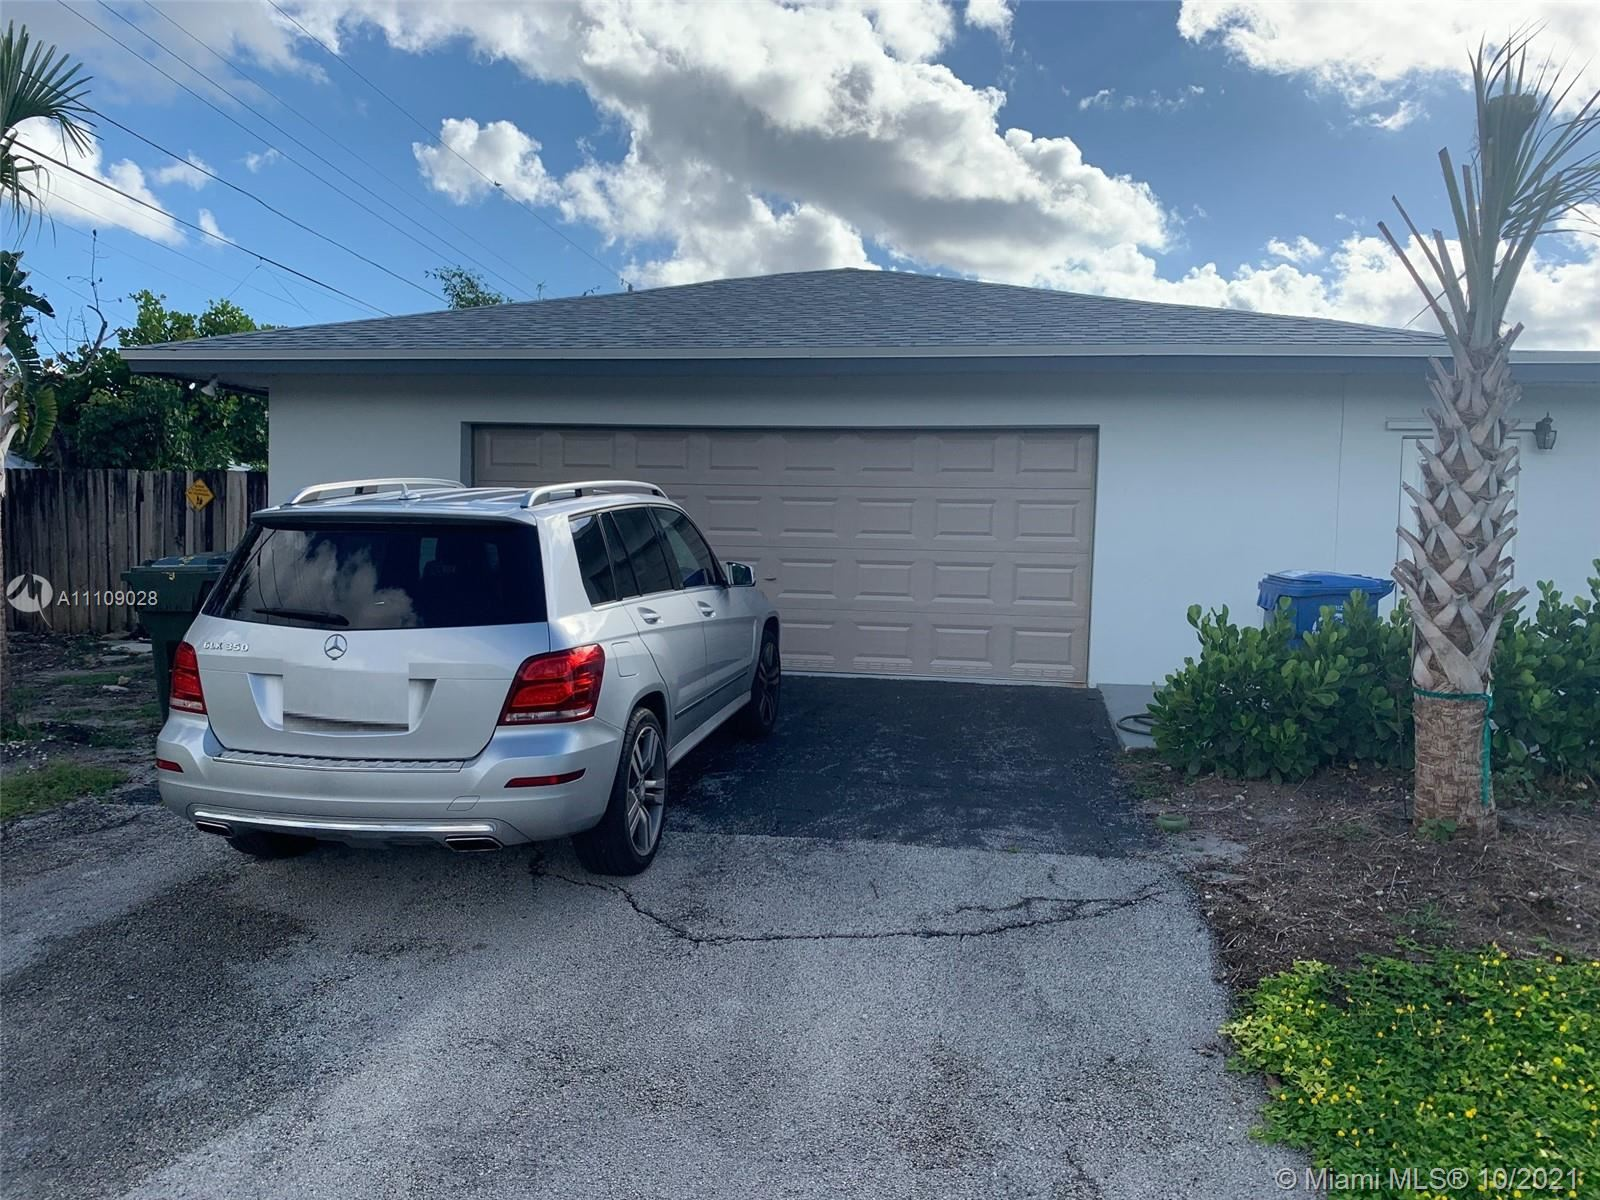 Photo of 497 NW 46th Ct, Oakland Park, FL 33309 (MLS # A11109028)